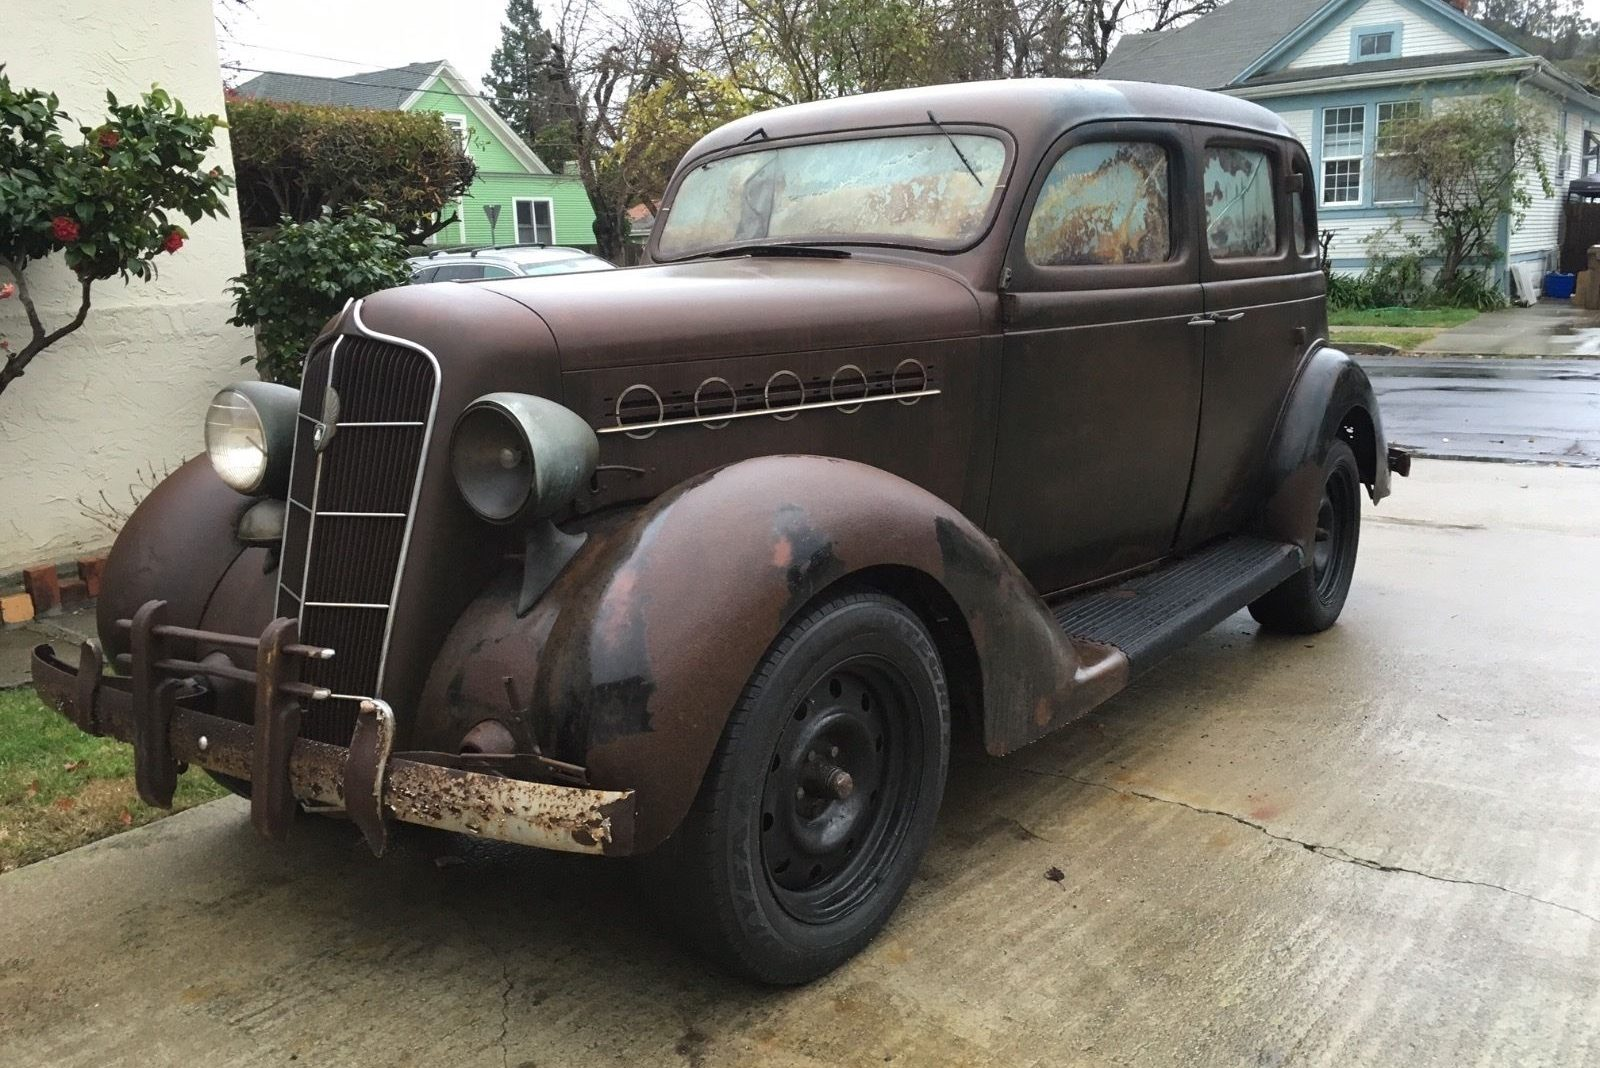 project plymouth  1935 plymouth sedan barn find